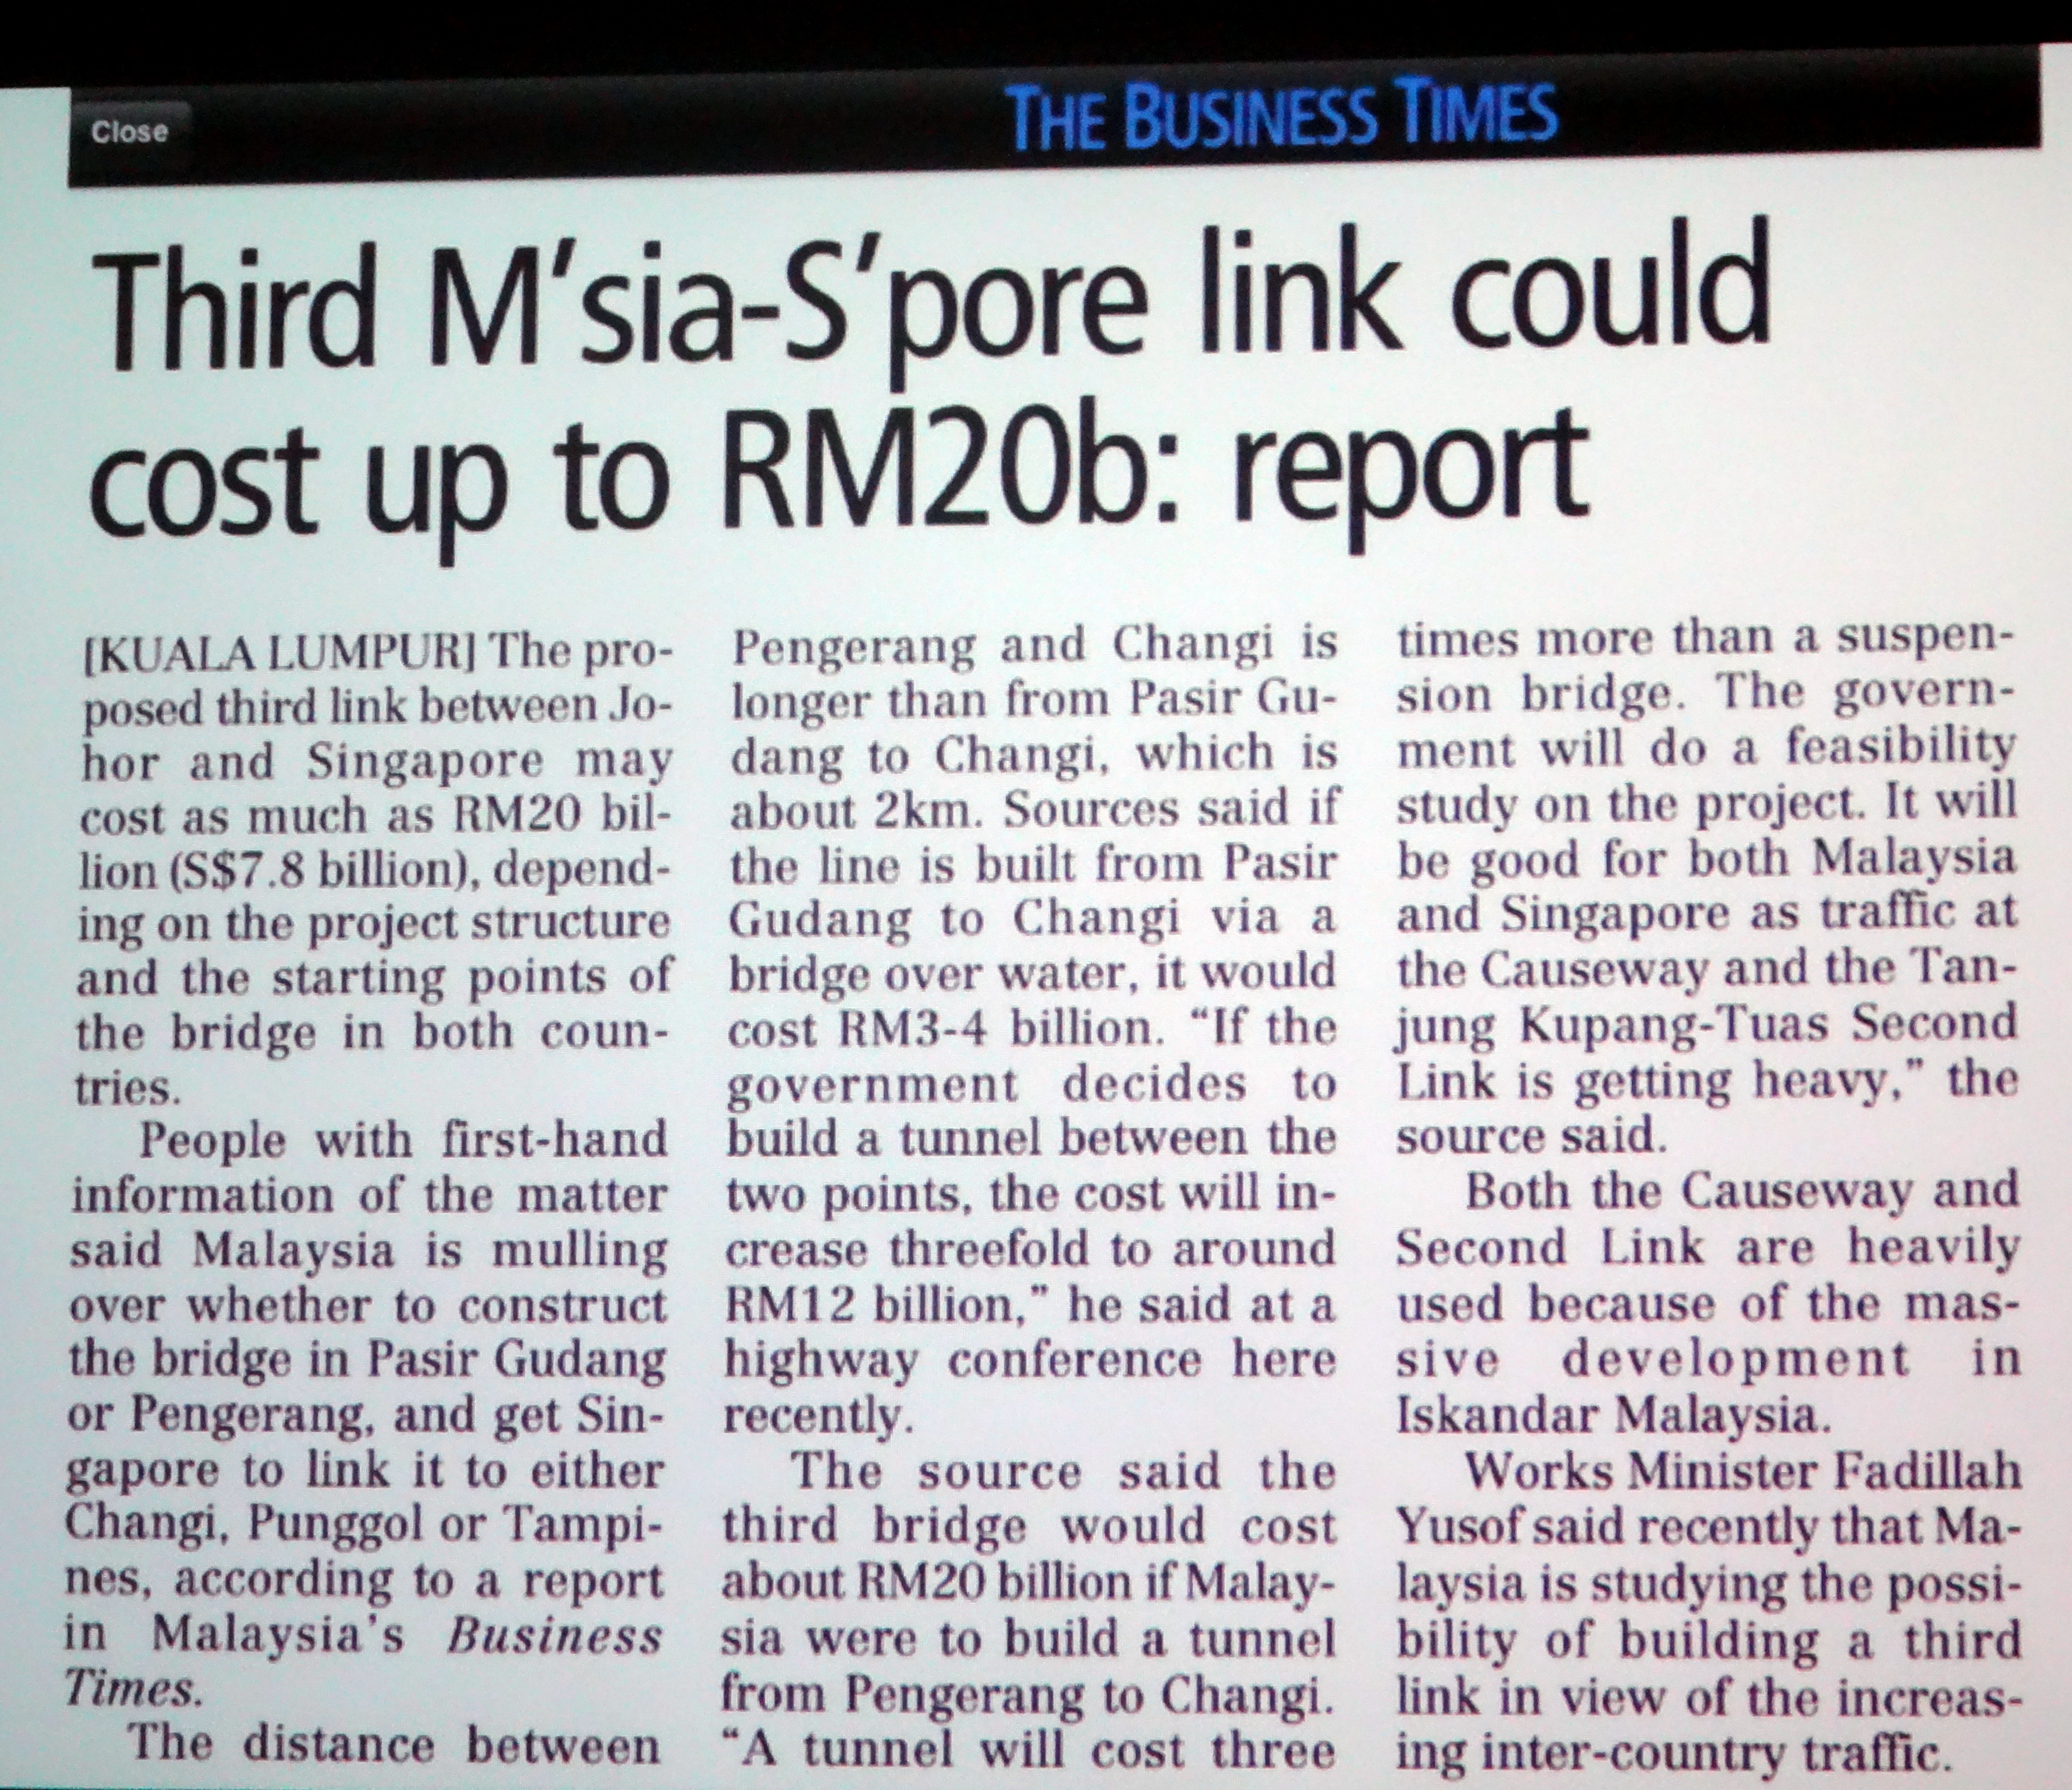 Third Msia – Spore link  could cost up to RM20BReport